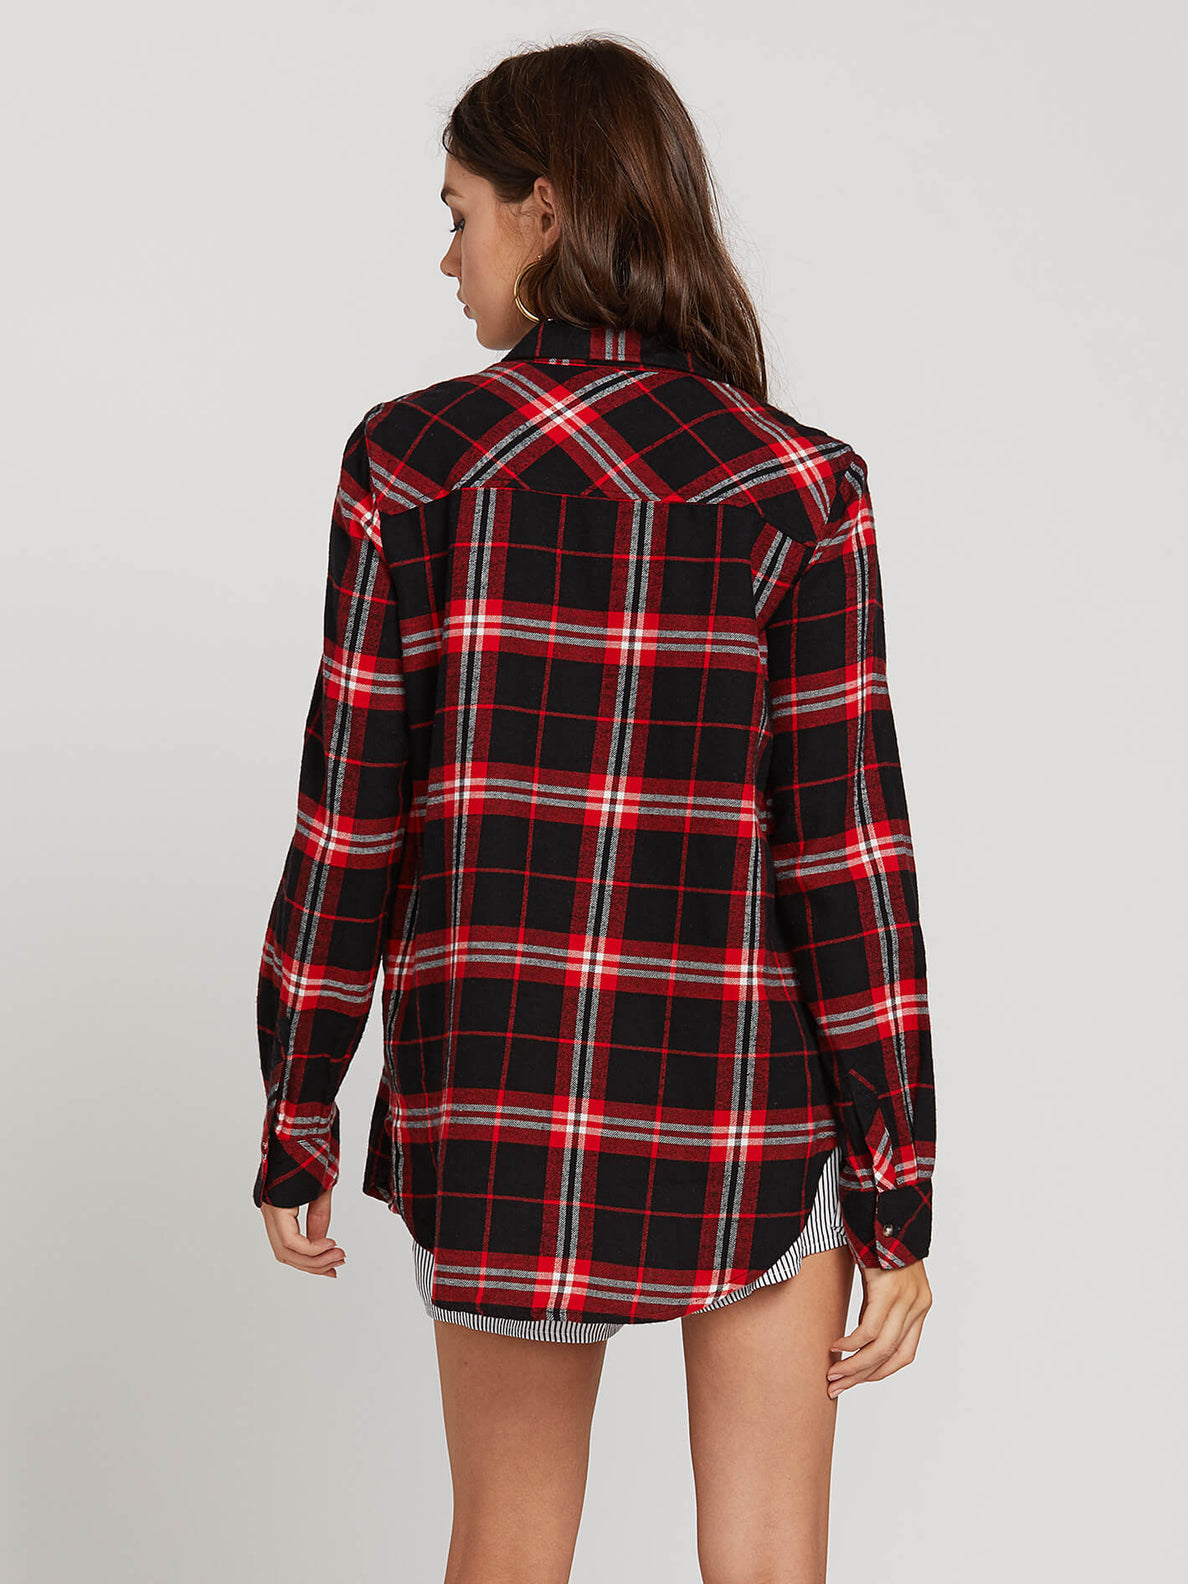 Getting Rad Plaid Ls In Flash Red, Back View